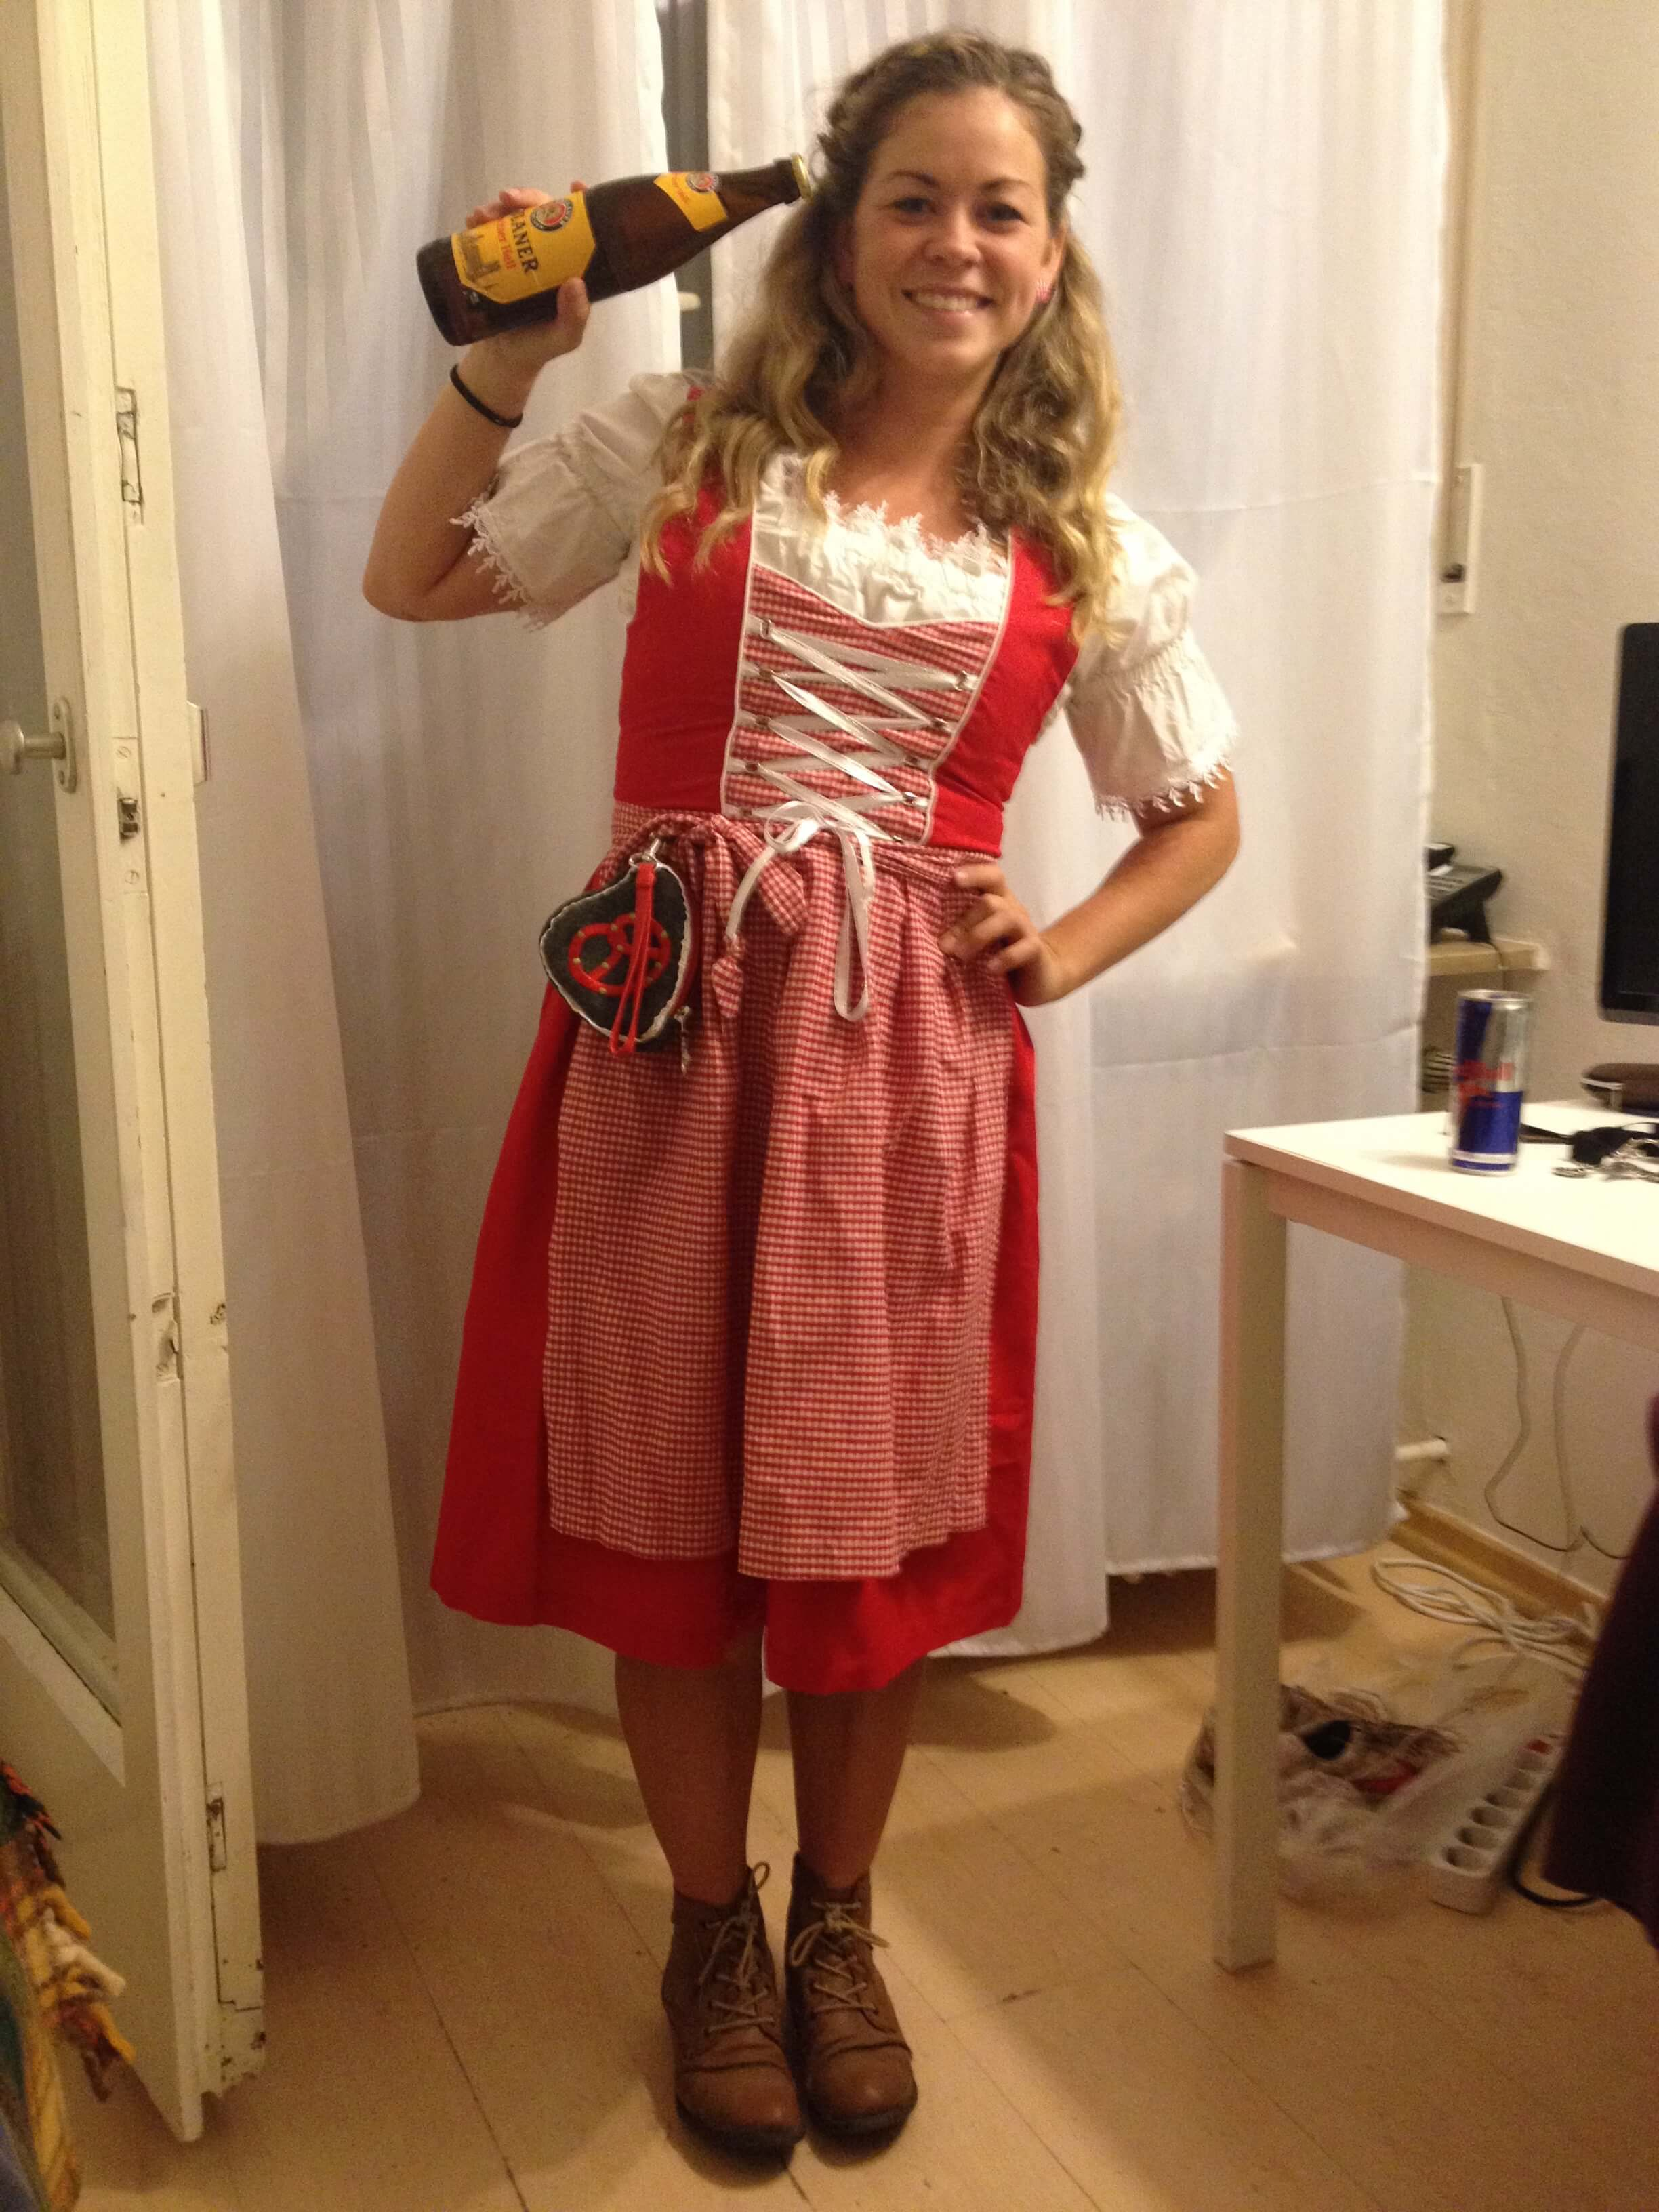 In my Dirndl and ready to go!